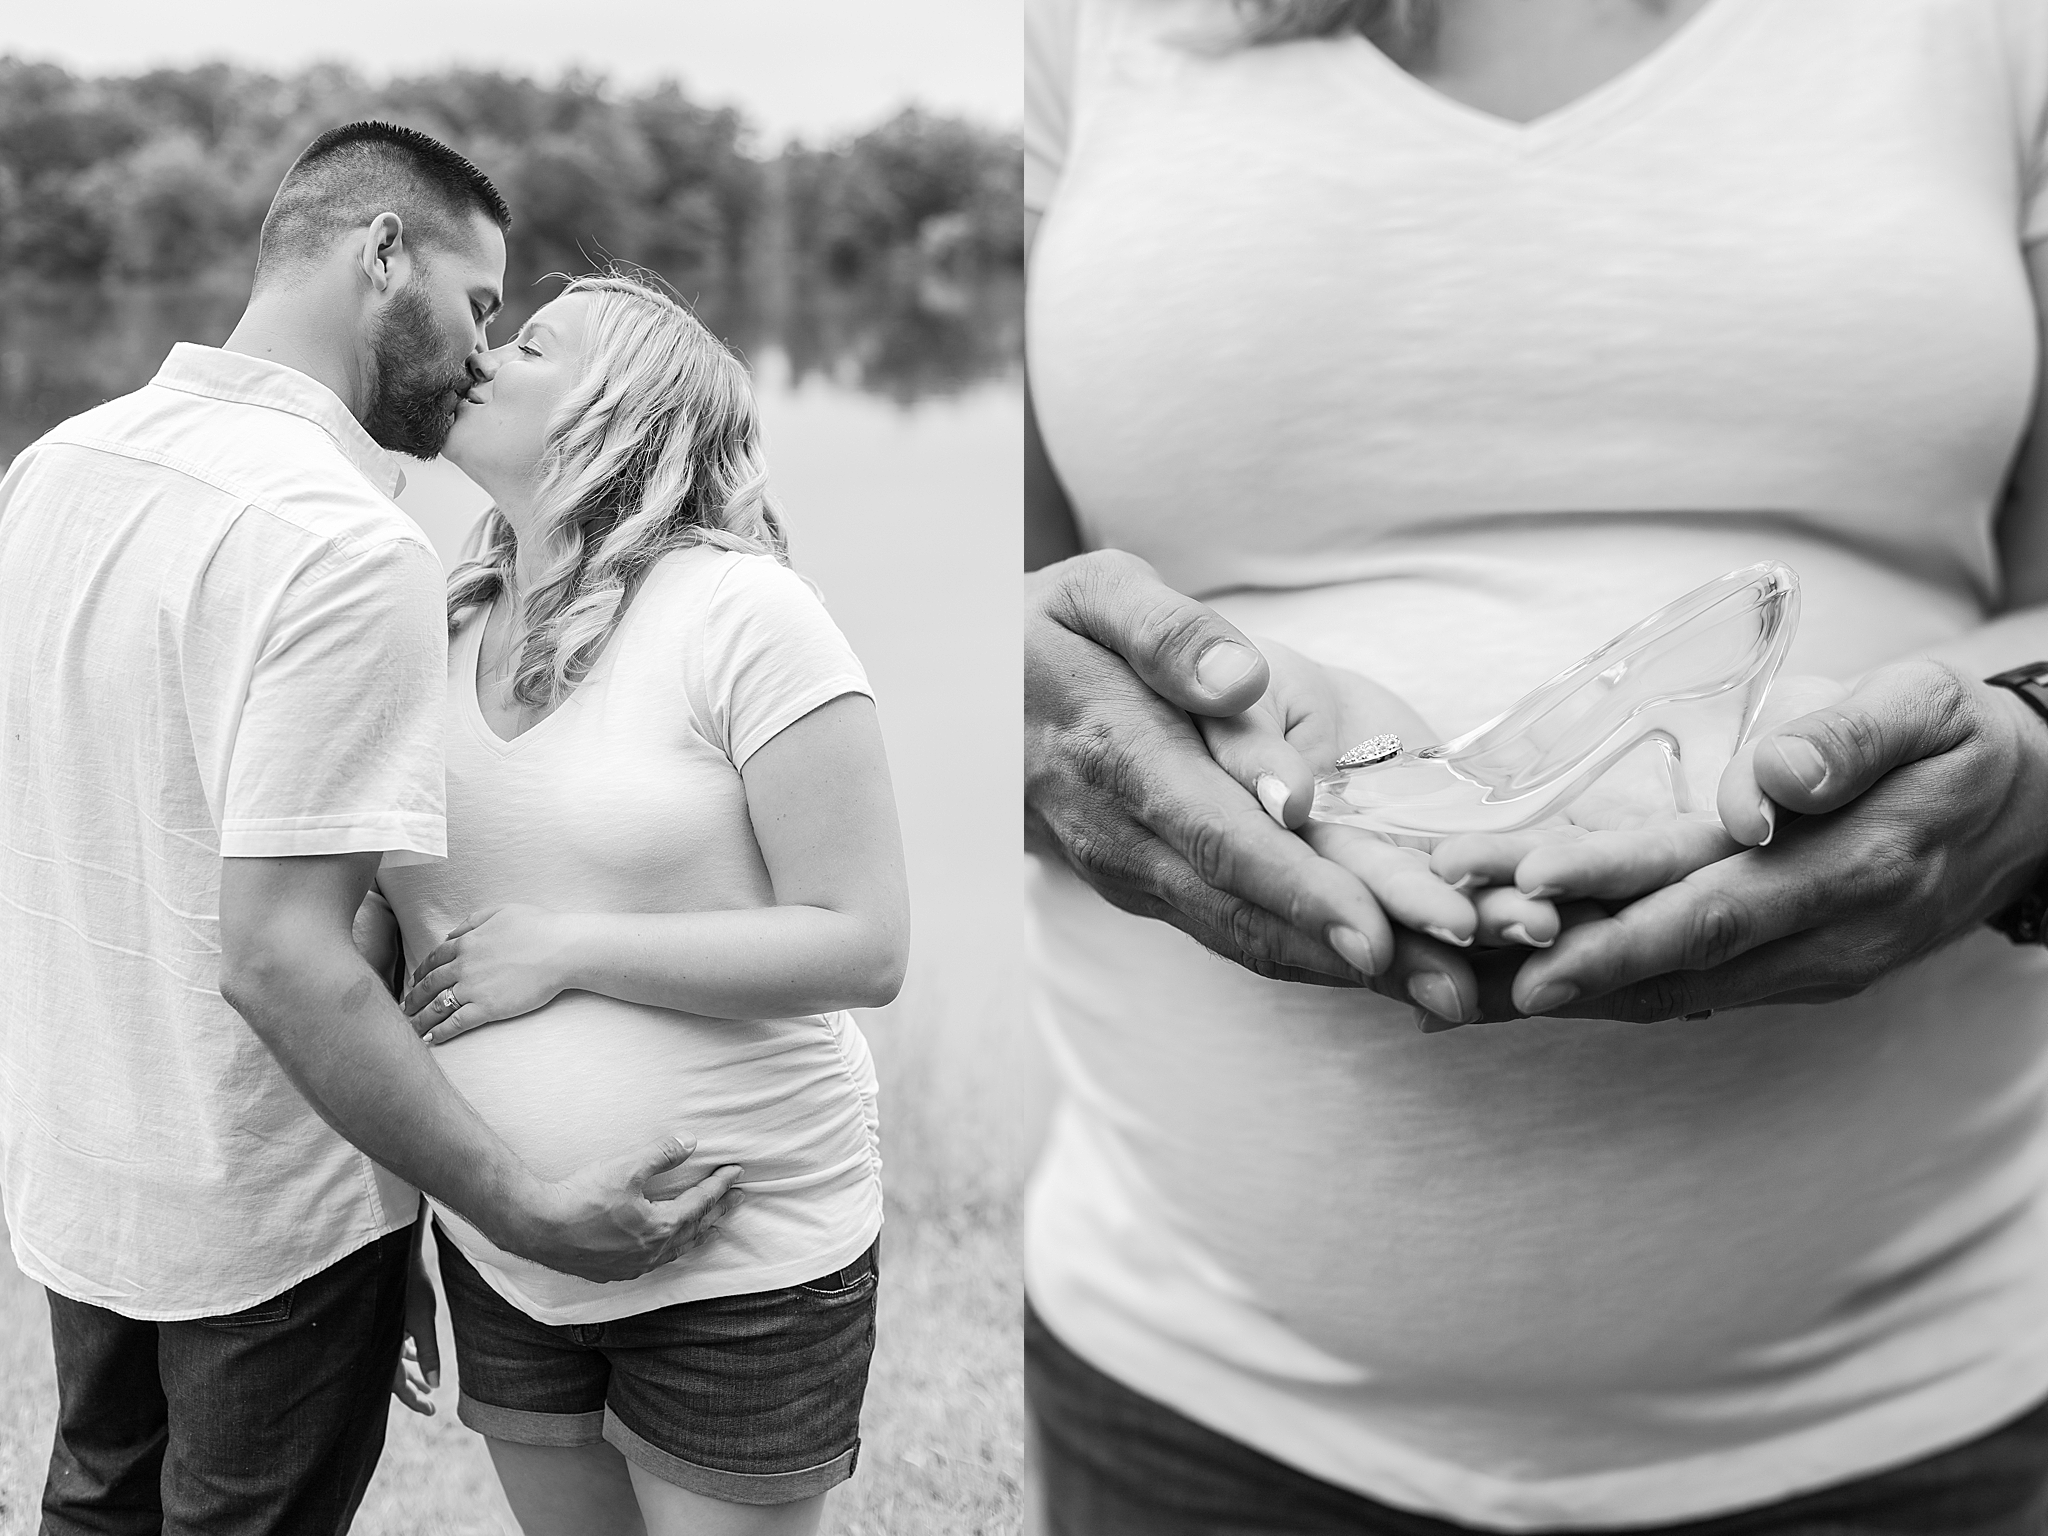 detroit-wedding-photographer-kensington-metro-park-maternity-keli-derek-by-courtney-carolyn-photography_0022.jpg